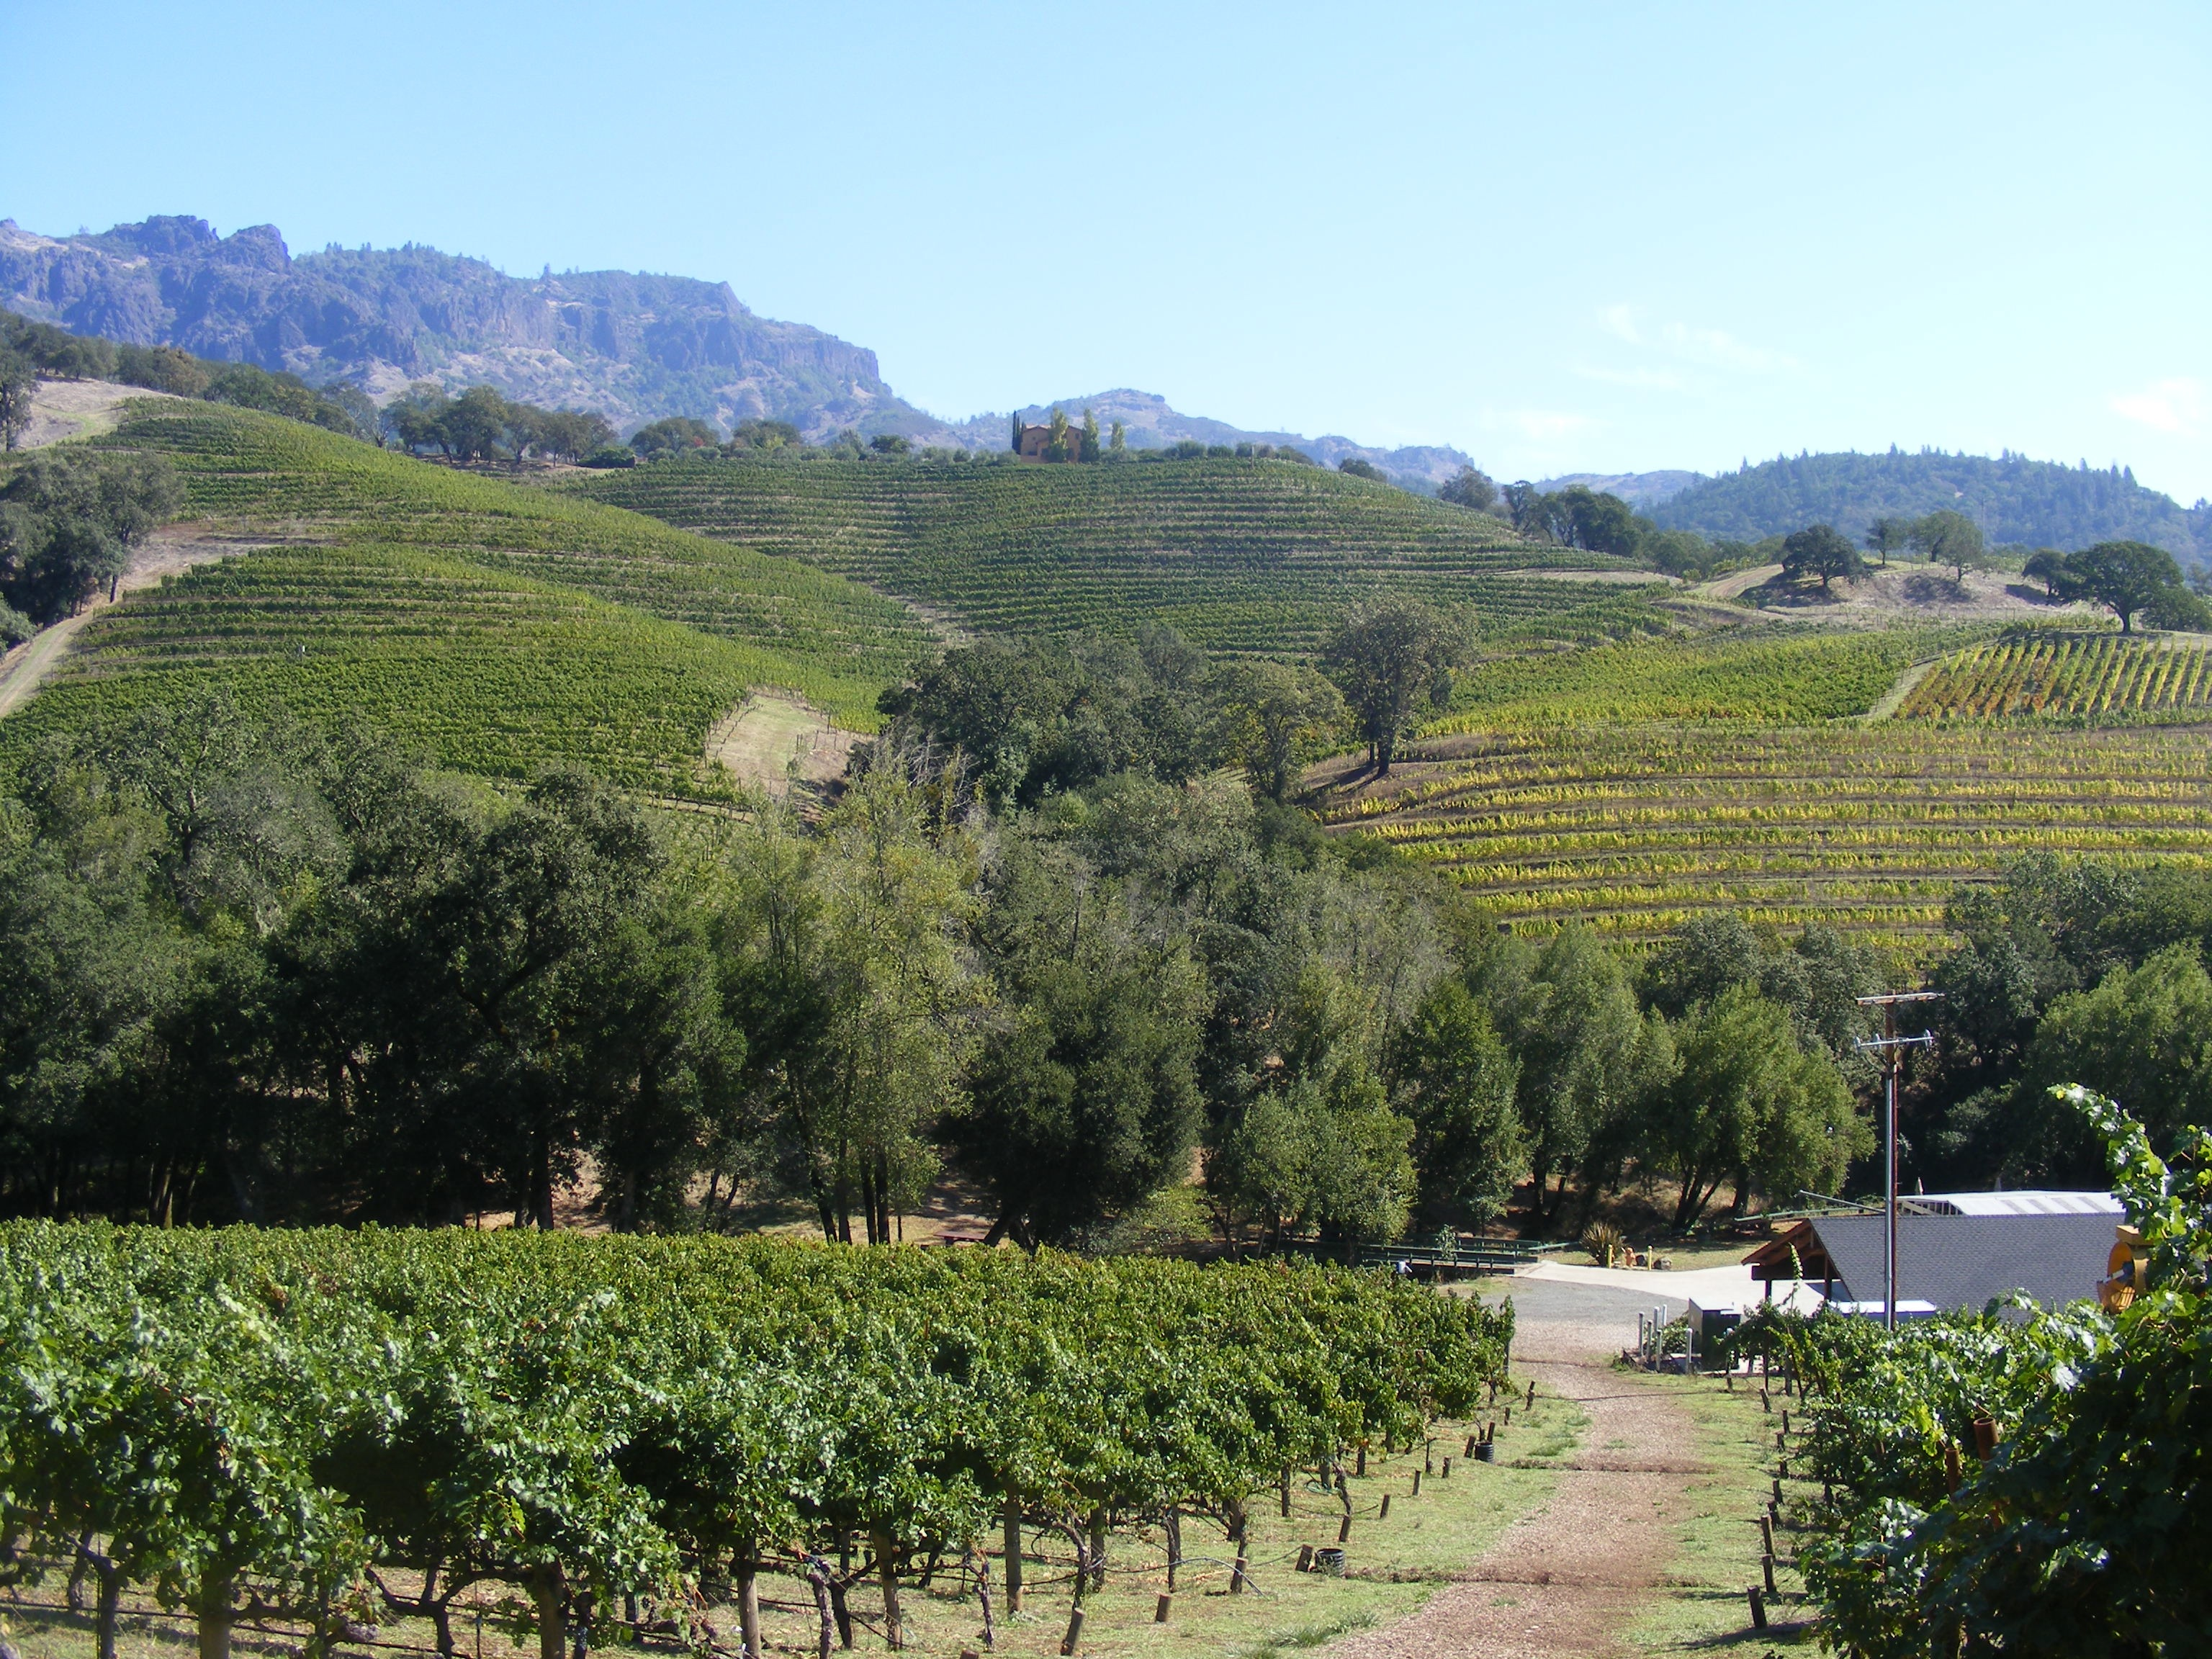 View of vineyards and rolling hills in Kenwood, CA